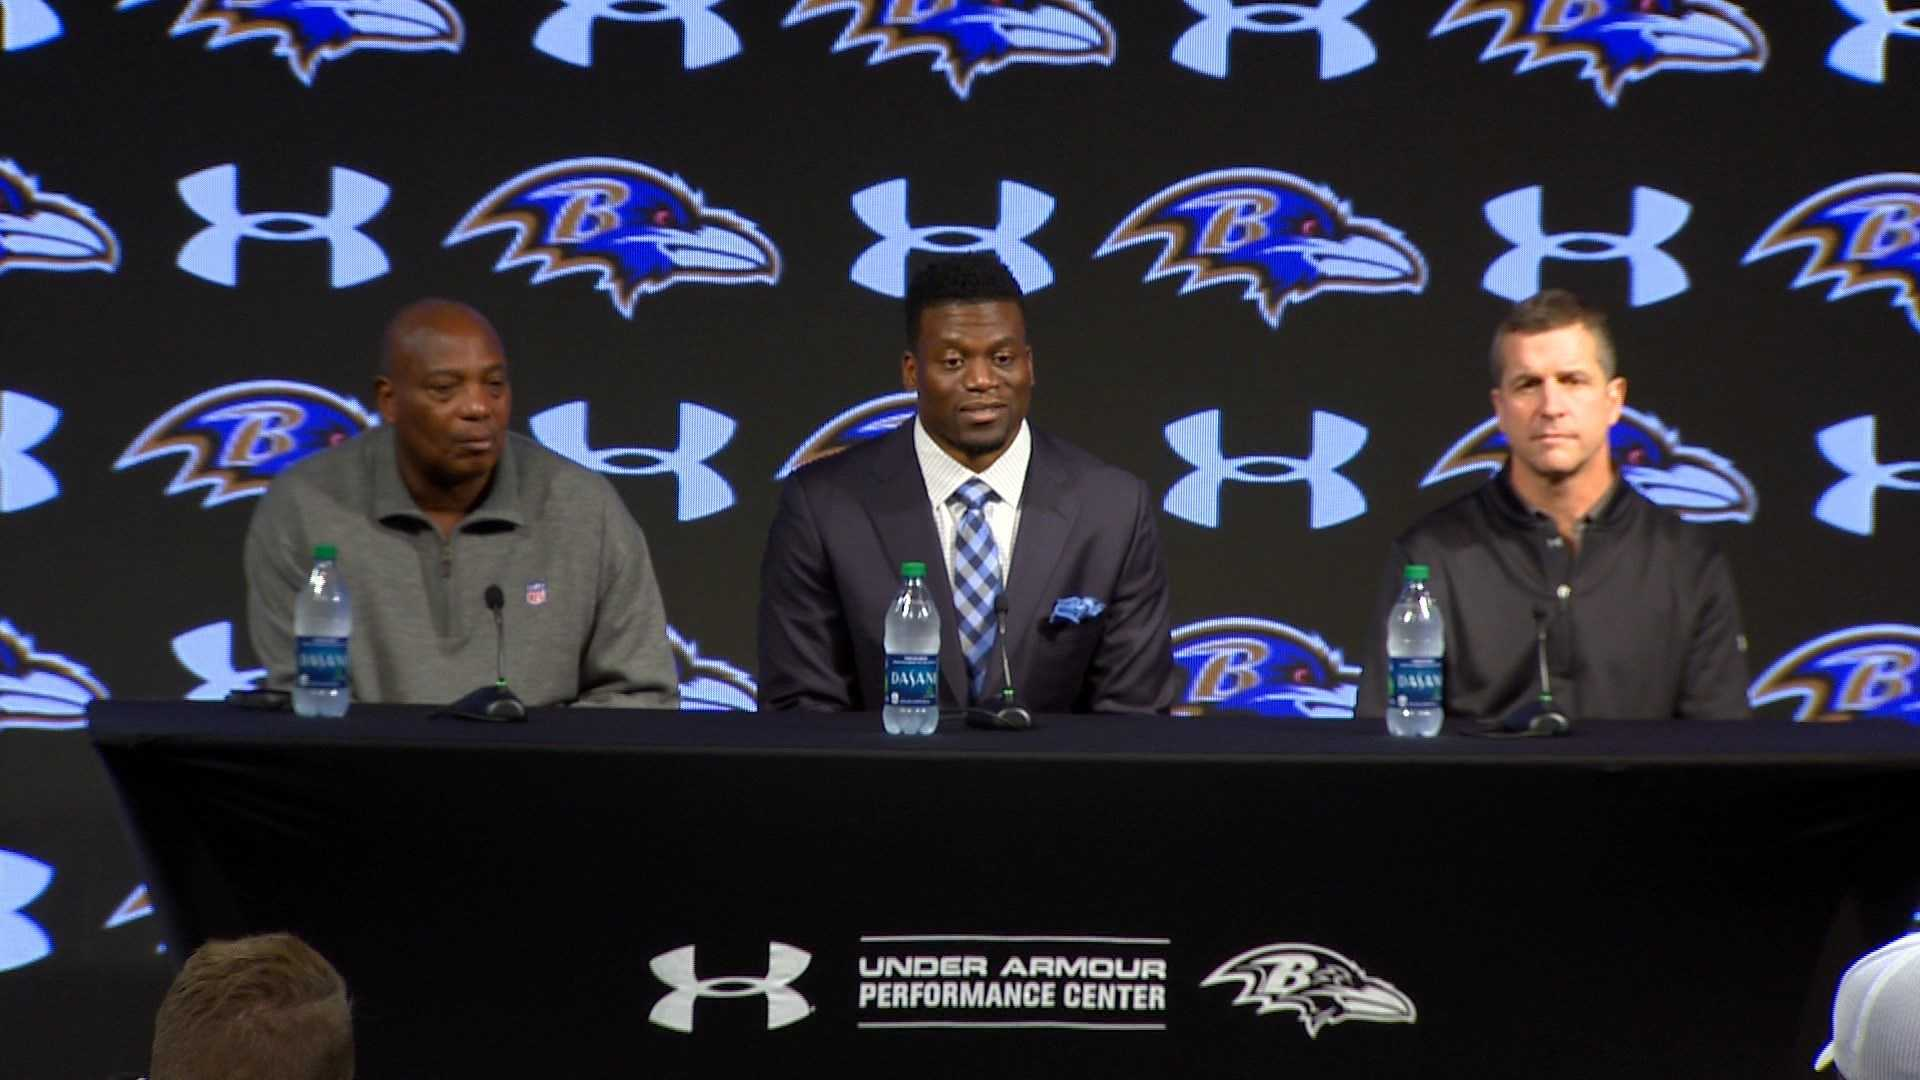 New Ravens tight end Ben Watson (center) addresses the media after signing a two-year deal with the team. Watson is joined at the news conference by general manager Ozzie Newsome (left) and coach John Harbaugh (right).